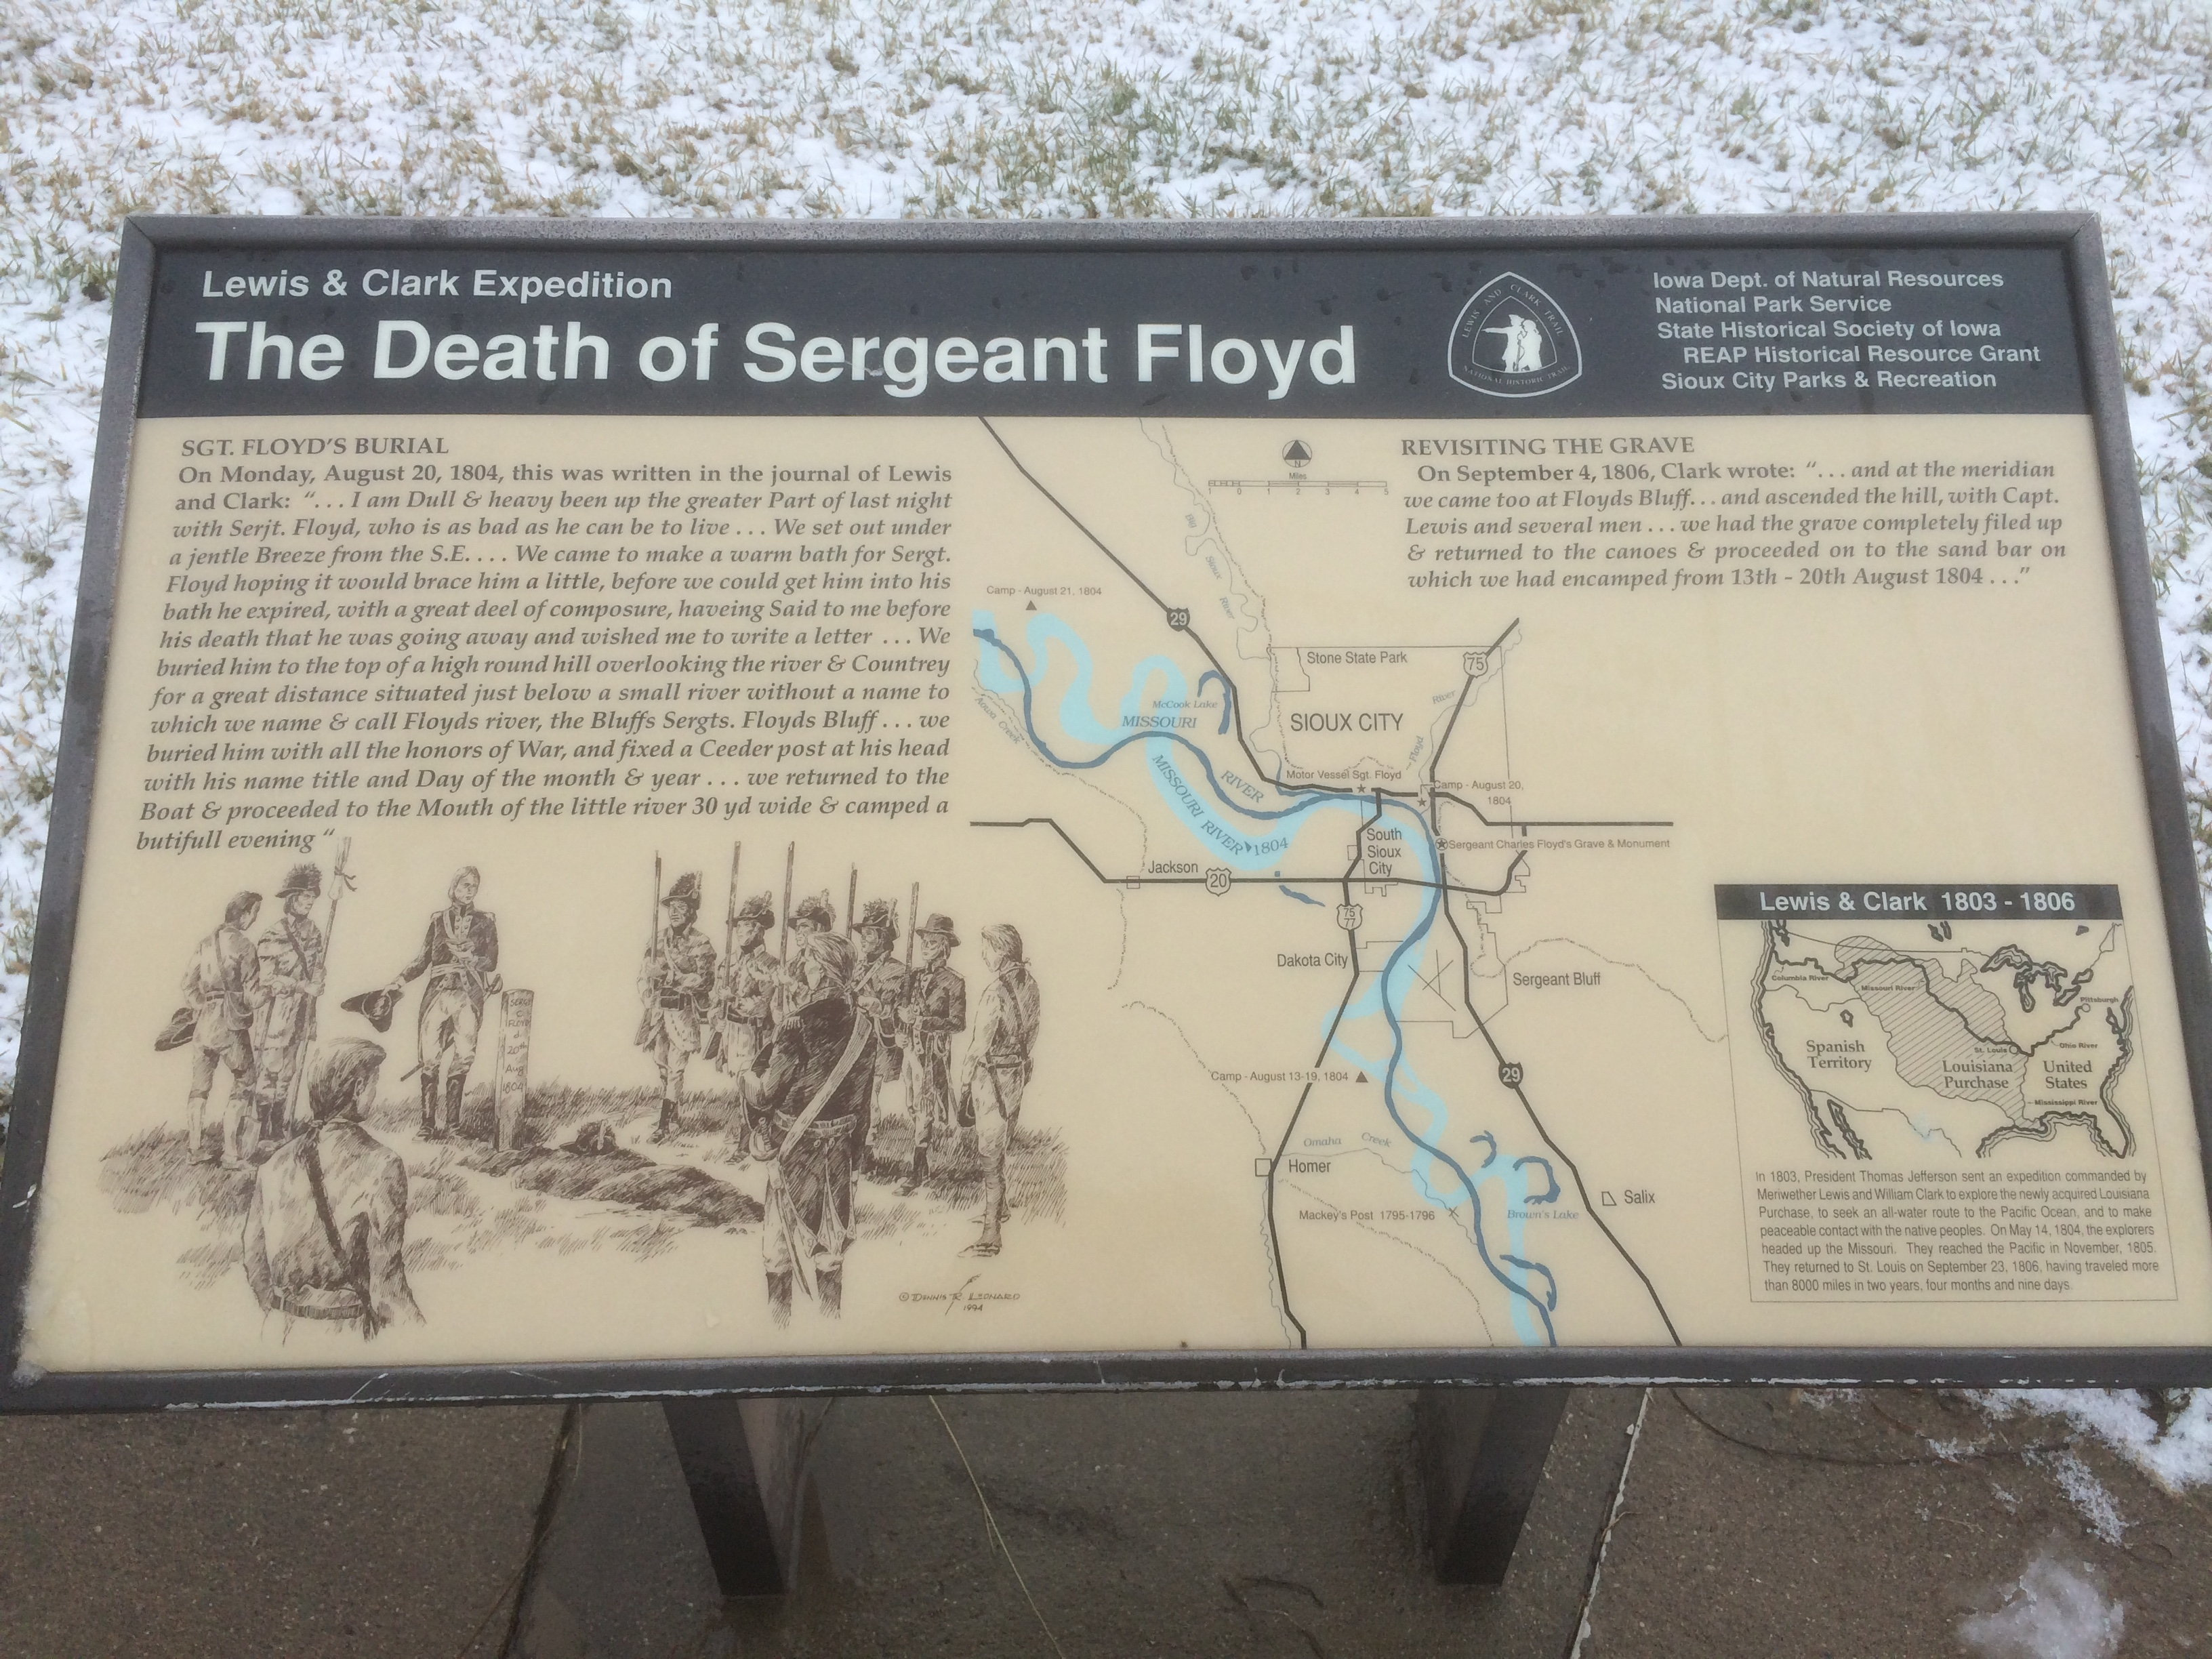 The Death of Sergeant Floyd Marker